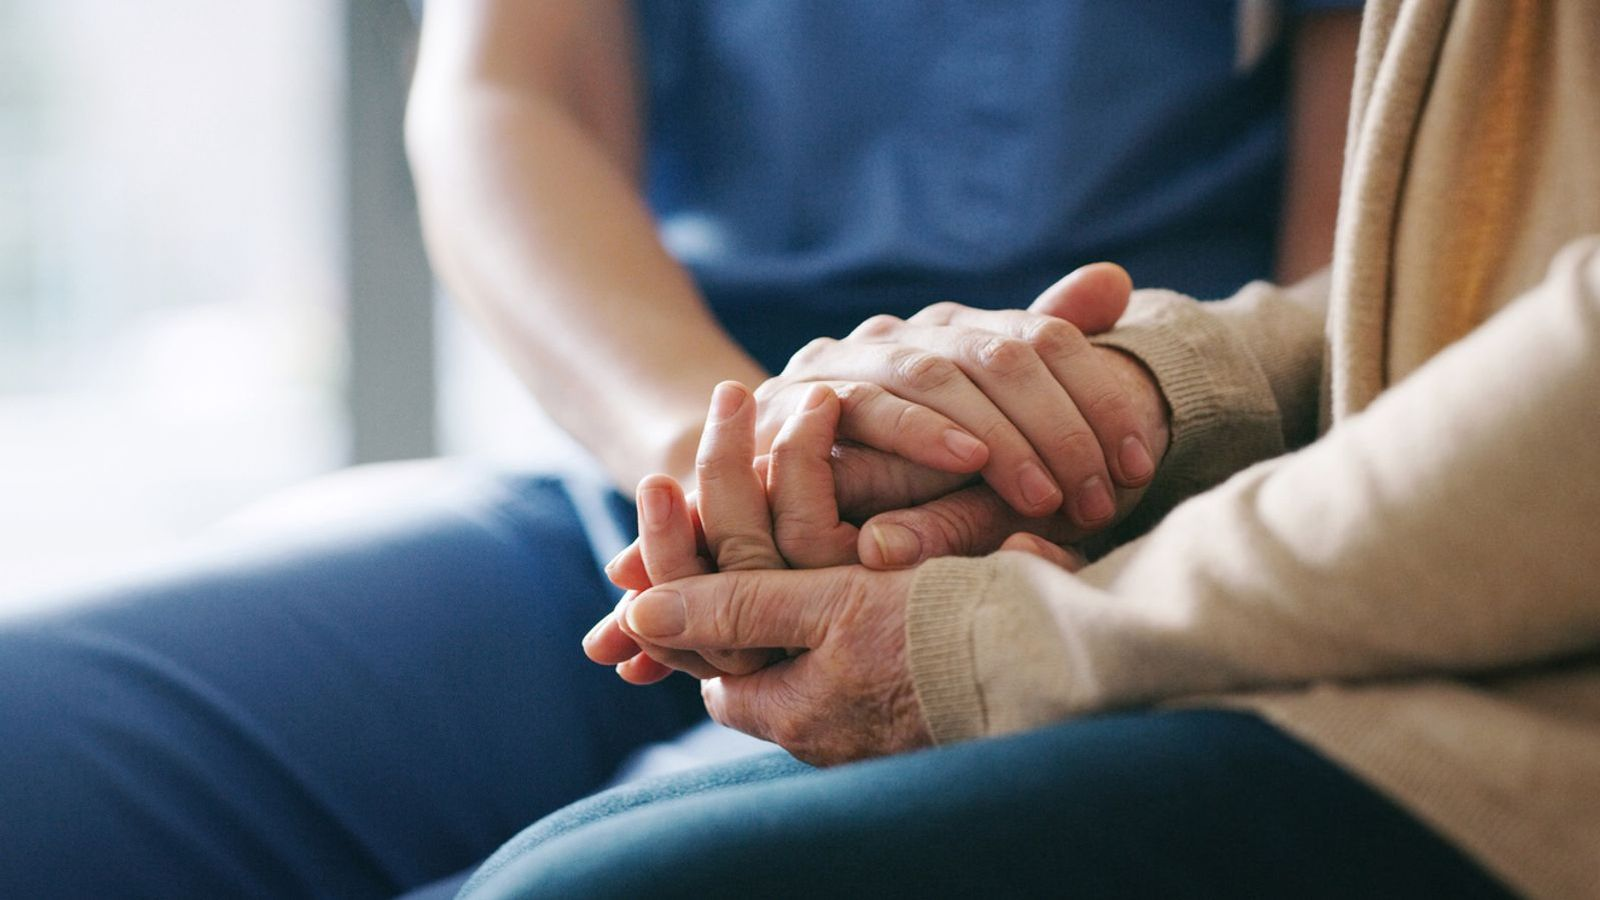 Coronavirus: Testing for COVID-19 in care homes delayed until September